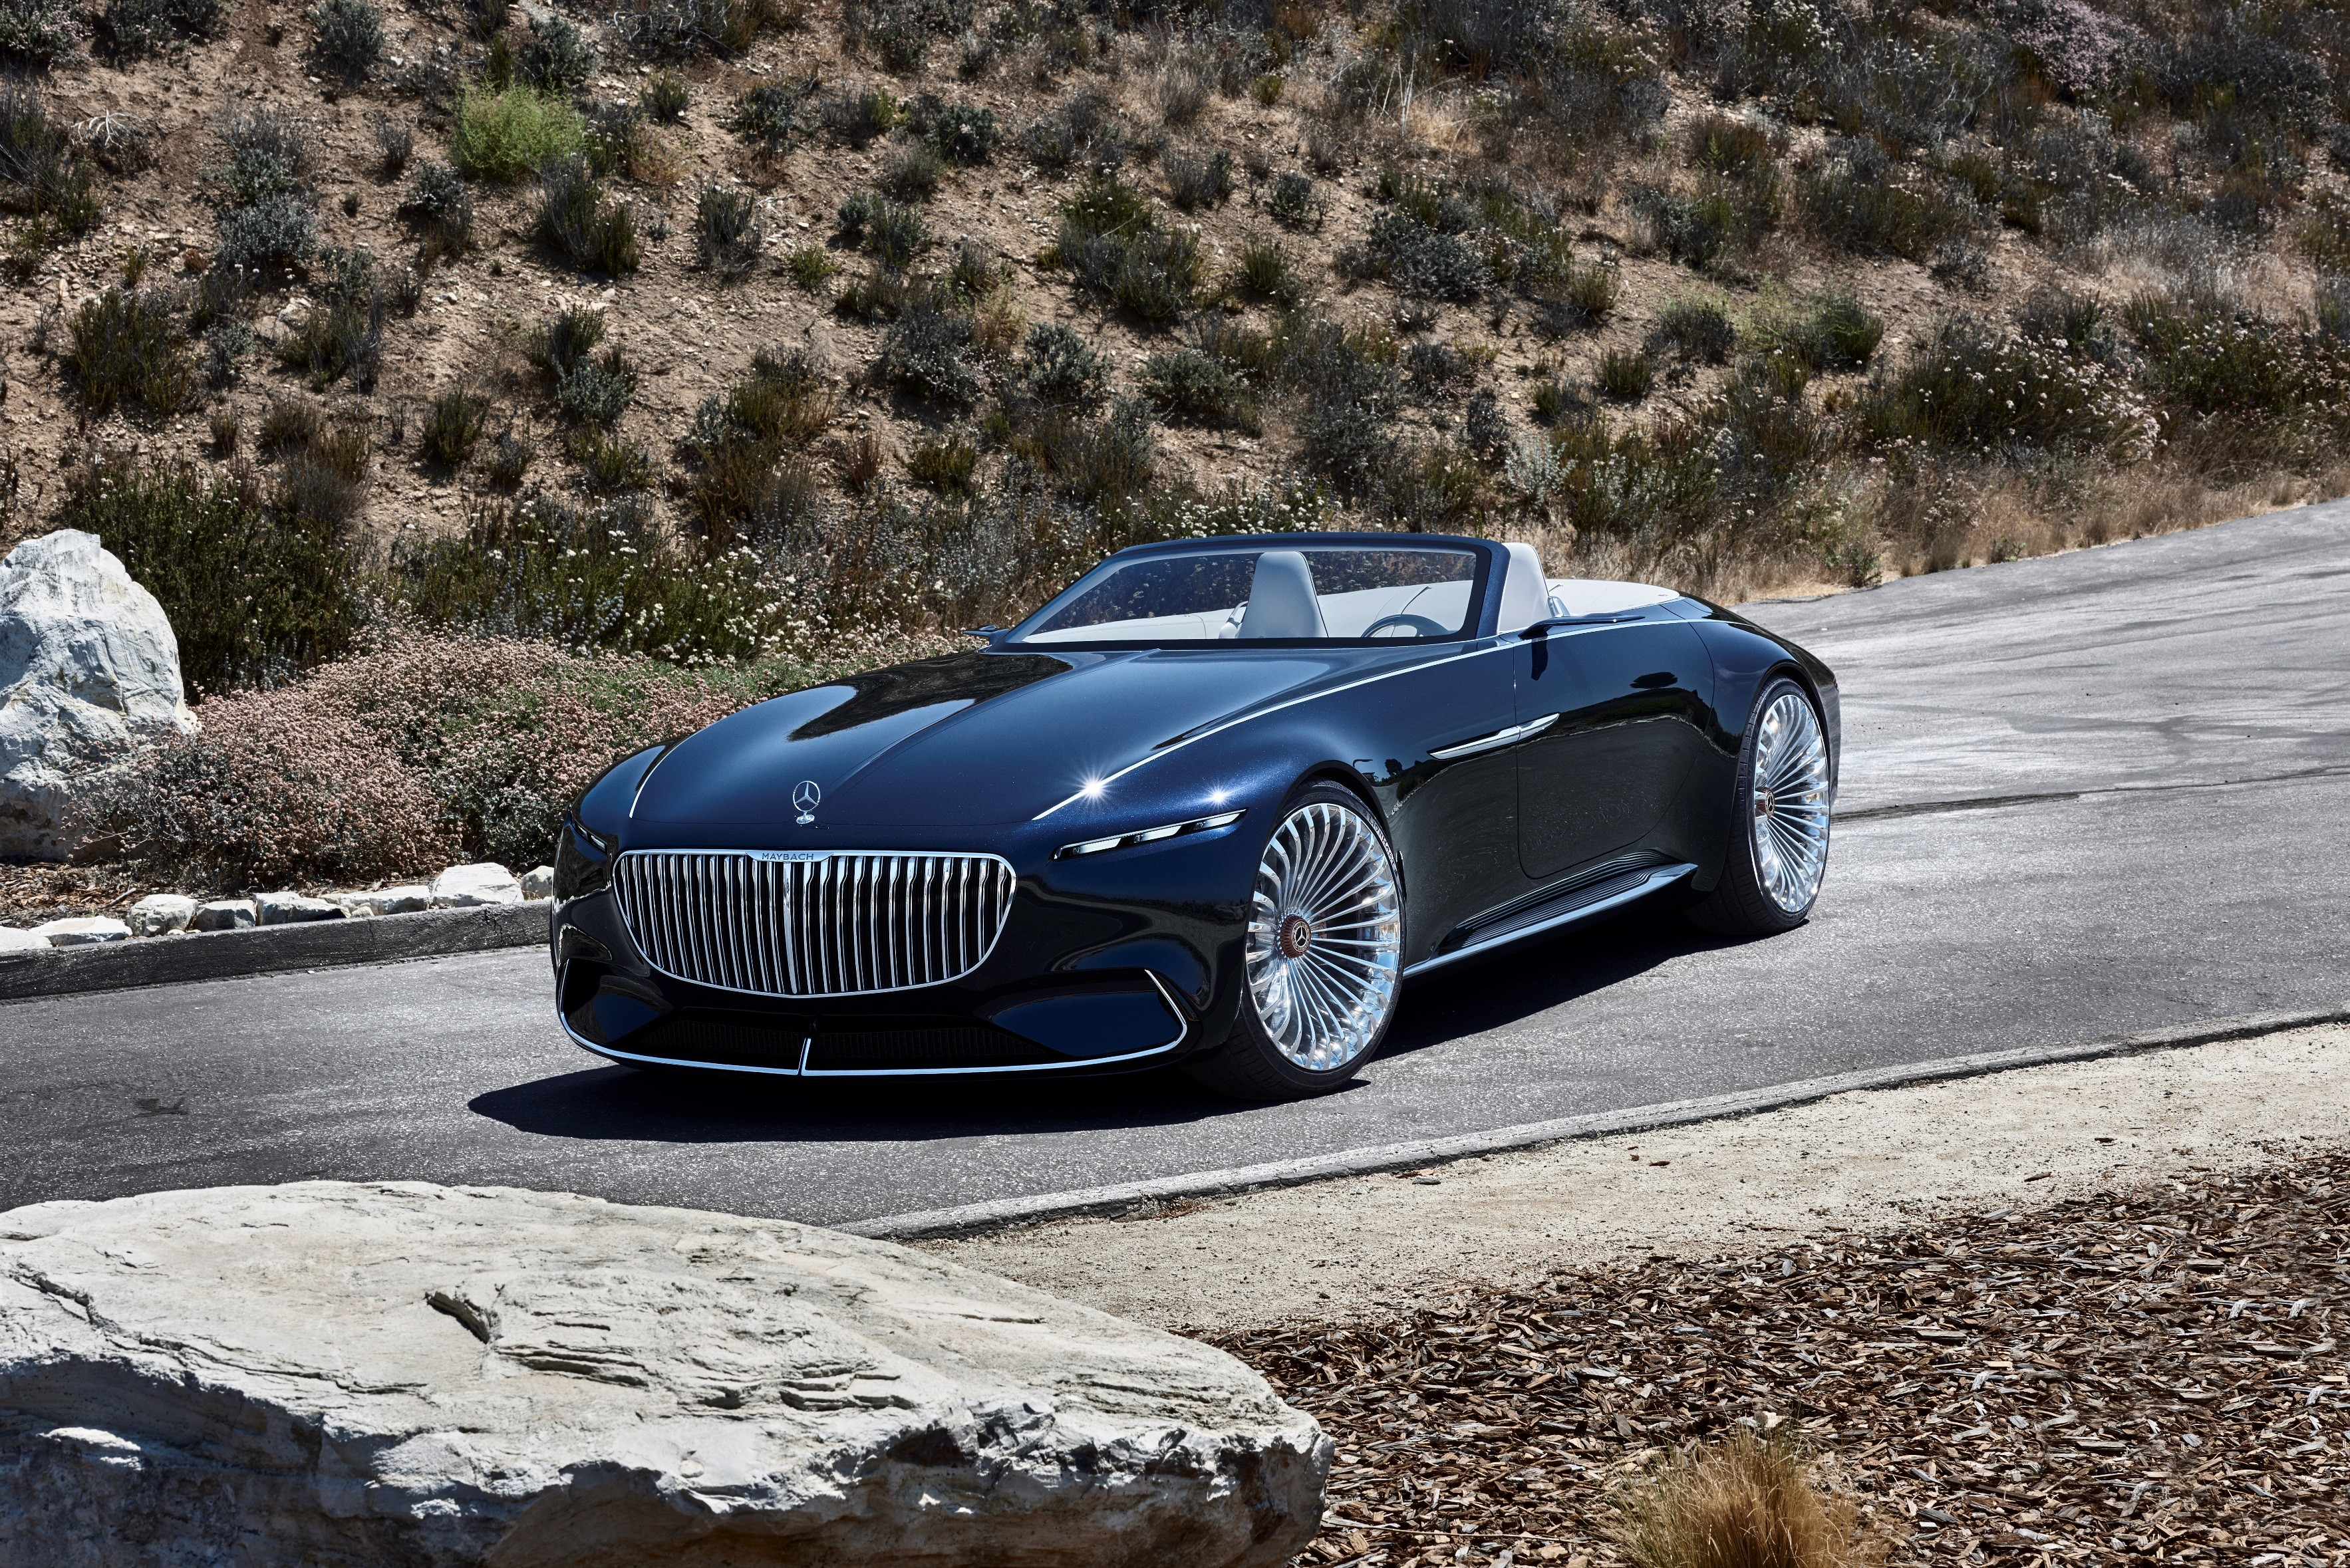 vision mercedes maybach 6 cabriolet is a showstopper at pebble beach autoevolution. Black Bedroom Furniture Sets. Home Design Ideas